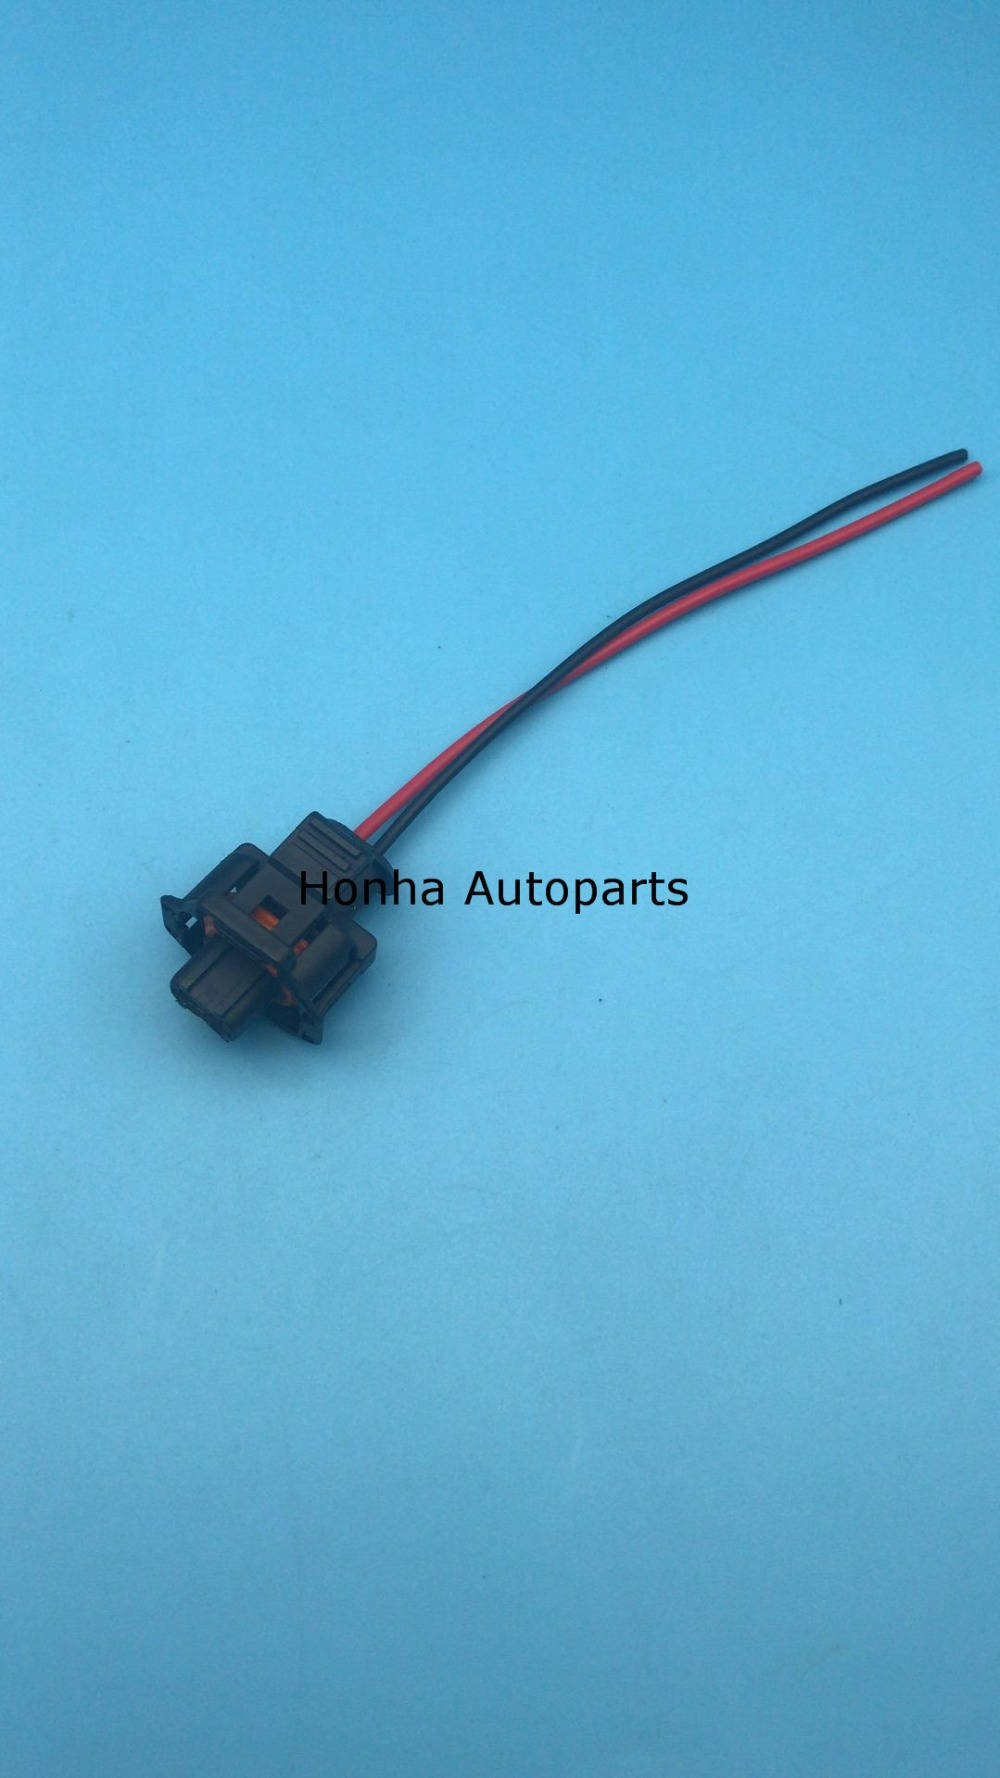 [DIAGRAM_38YU]  PIGTAIL CONNECTOR PT2183 FUEL INJECTION Harness Wiring CHEVROLET DIESEL NEW  for LLY LBZ LLM SAAB 9 3 & 9 5 1.9 DIESEL REPA pigtail harness  connector wire harness connectorssaab wiring harness - AliExpress   Lbz Wiring Harness      AliExpress